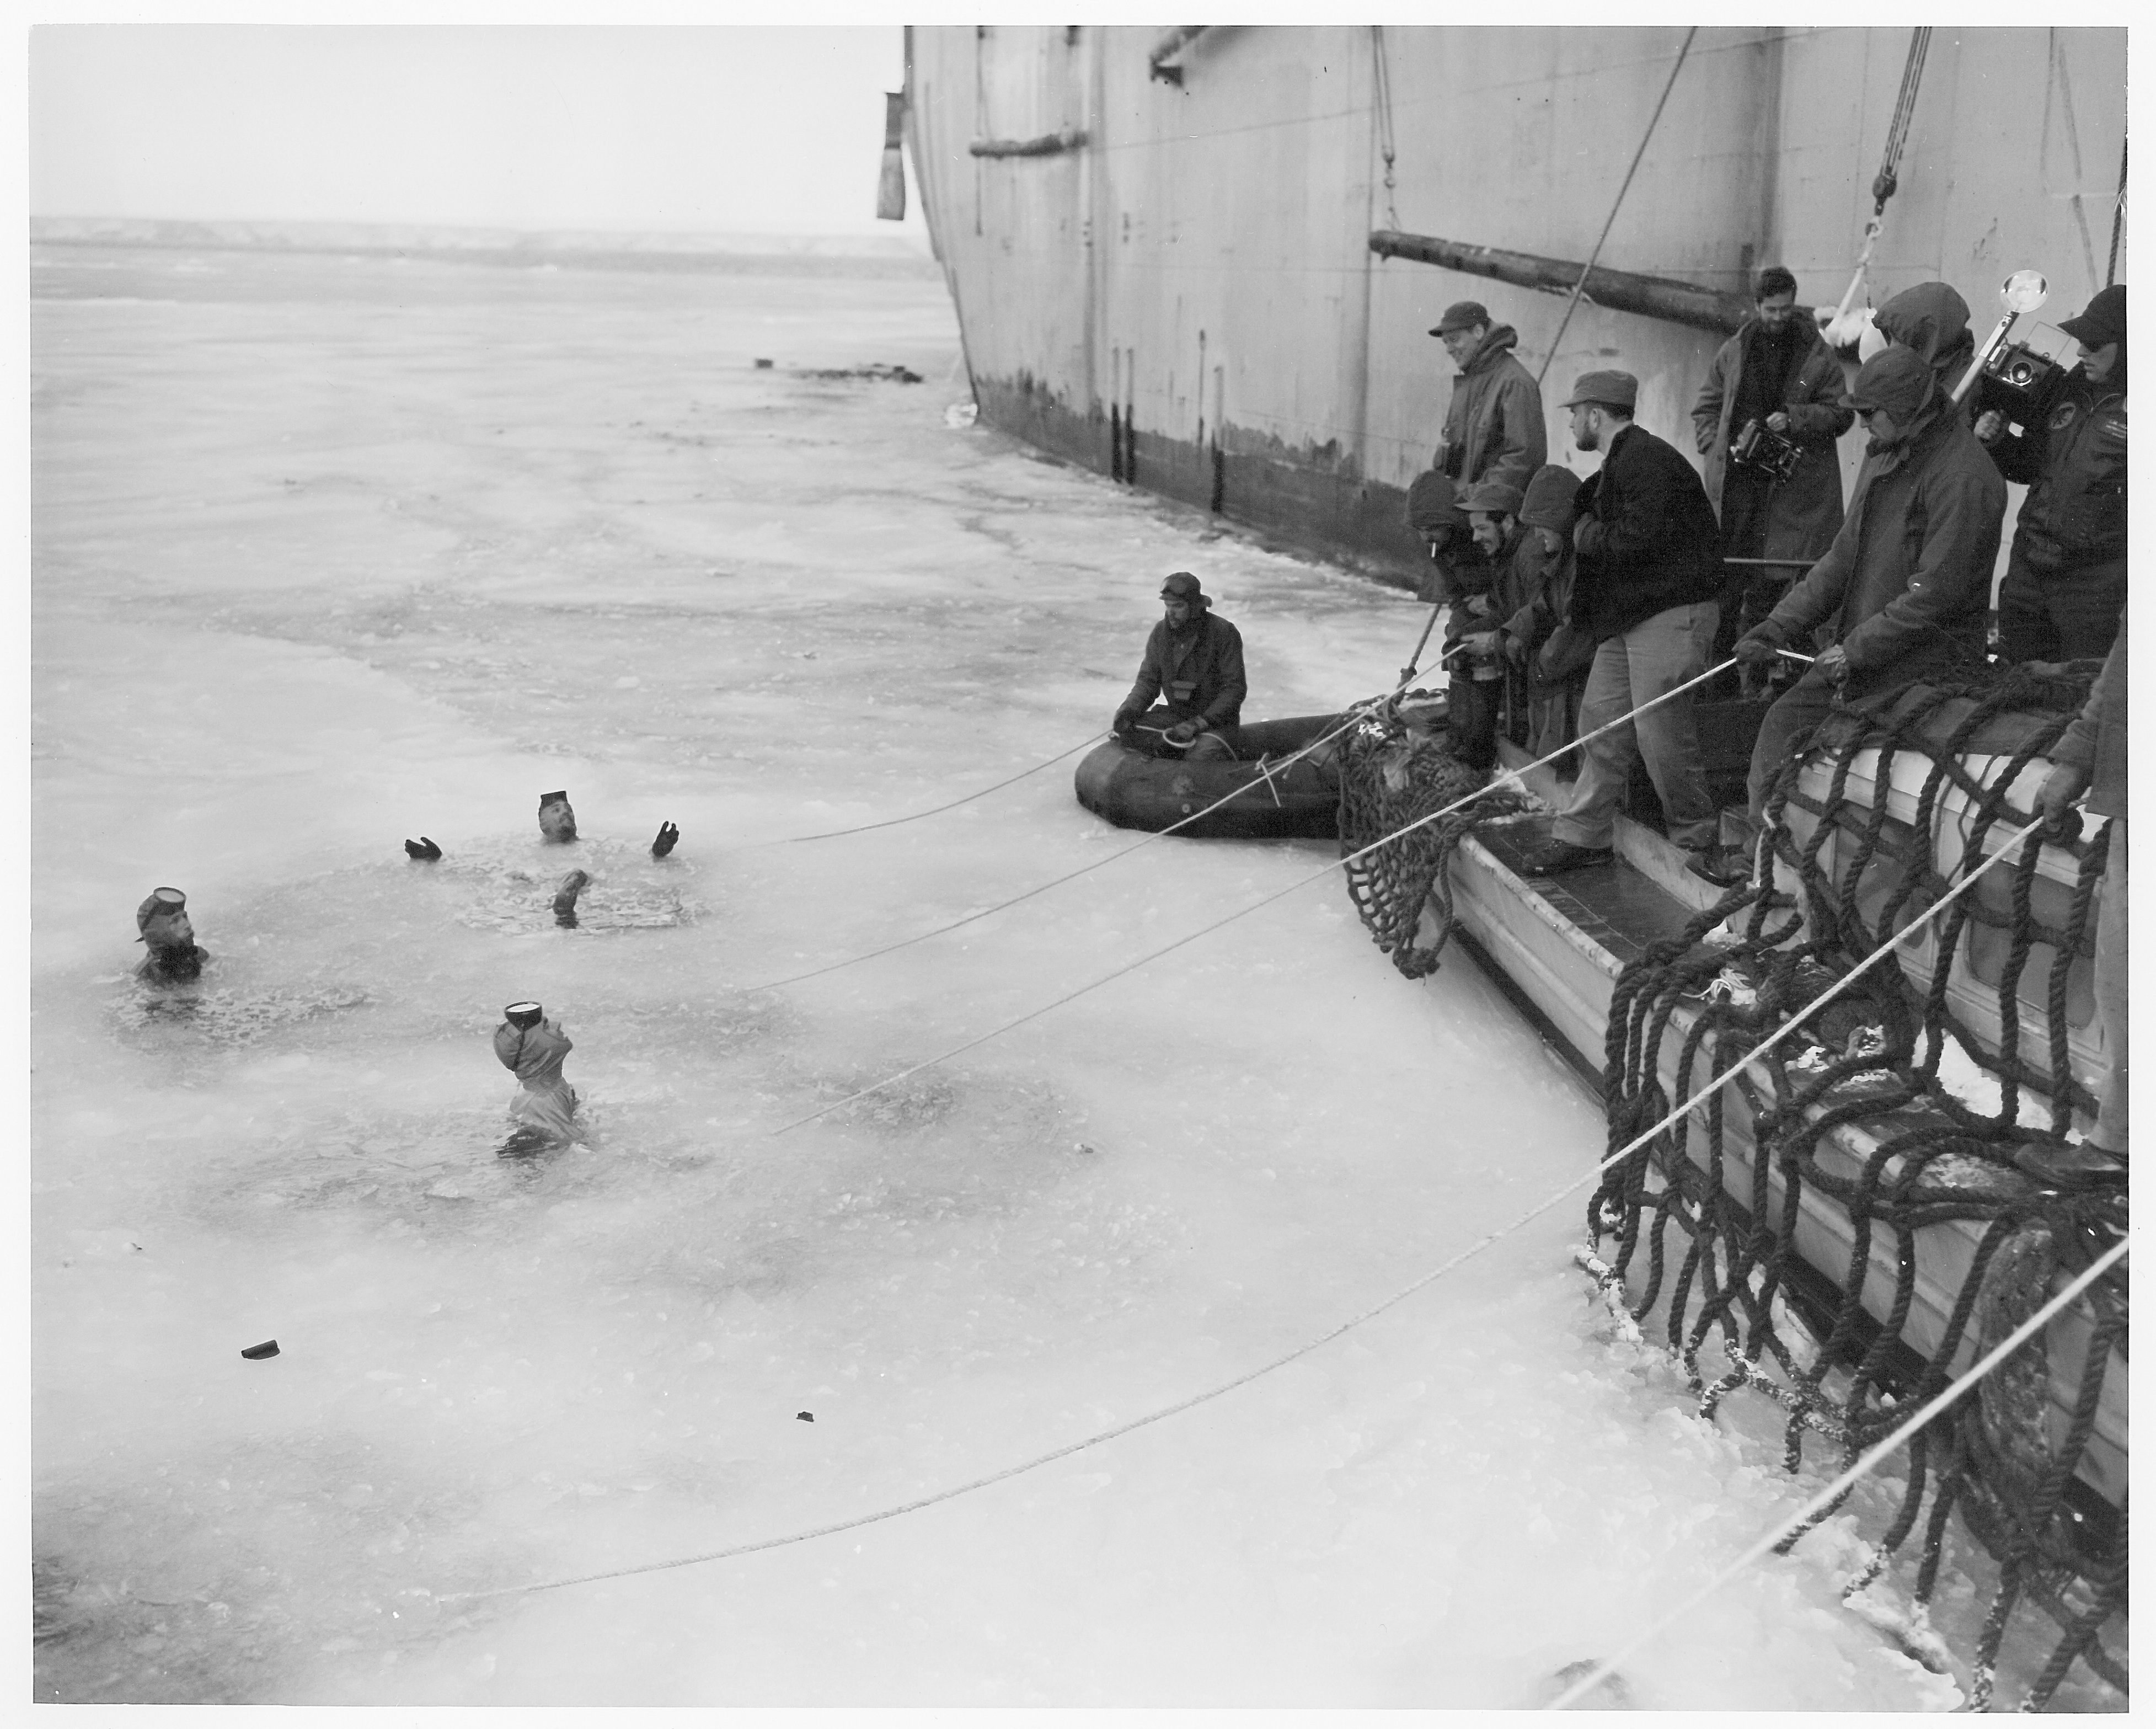 Three men swimming in icy water as several men on a boat watch.